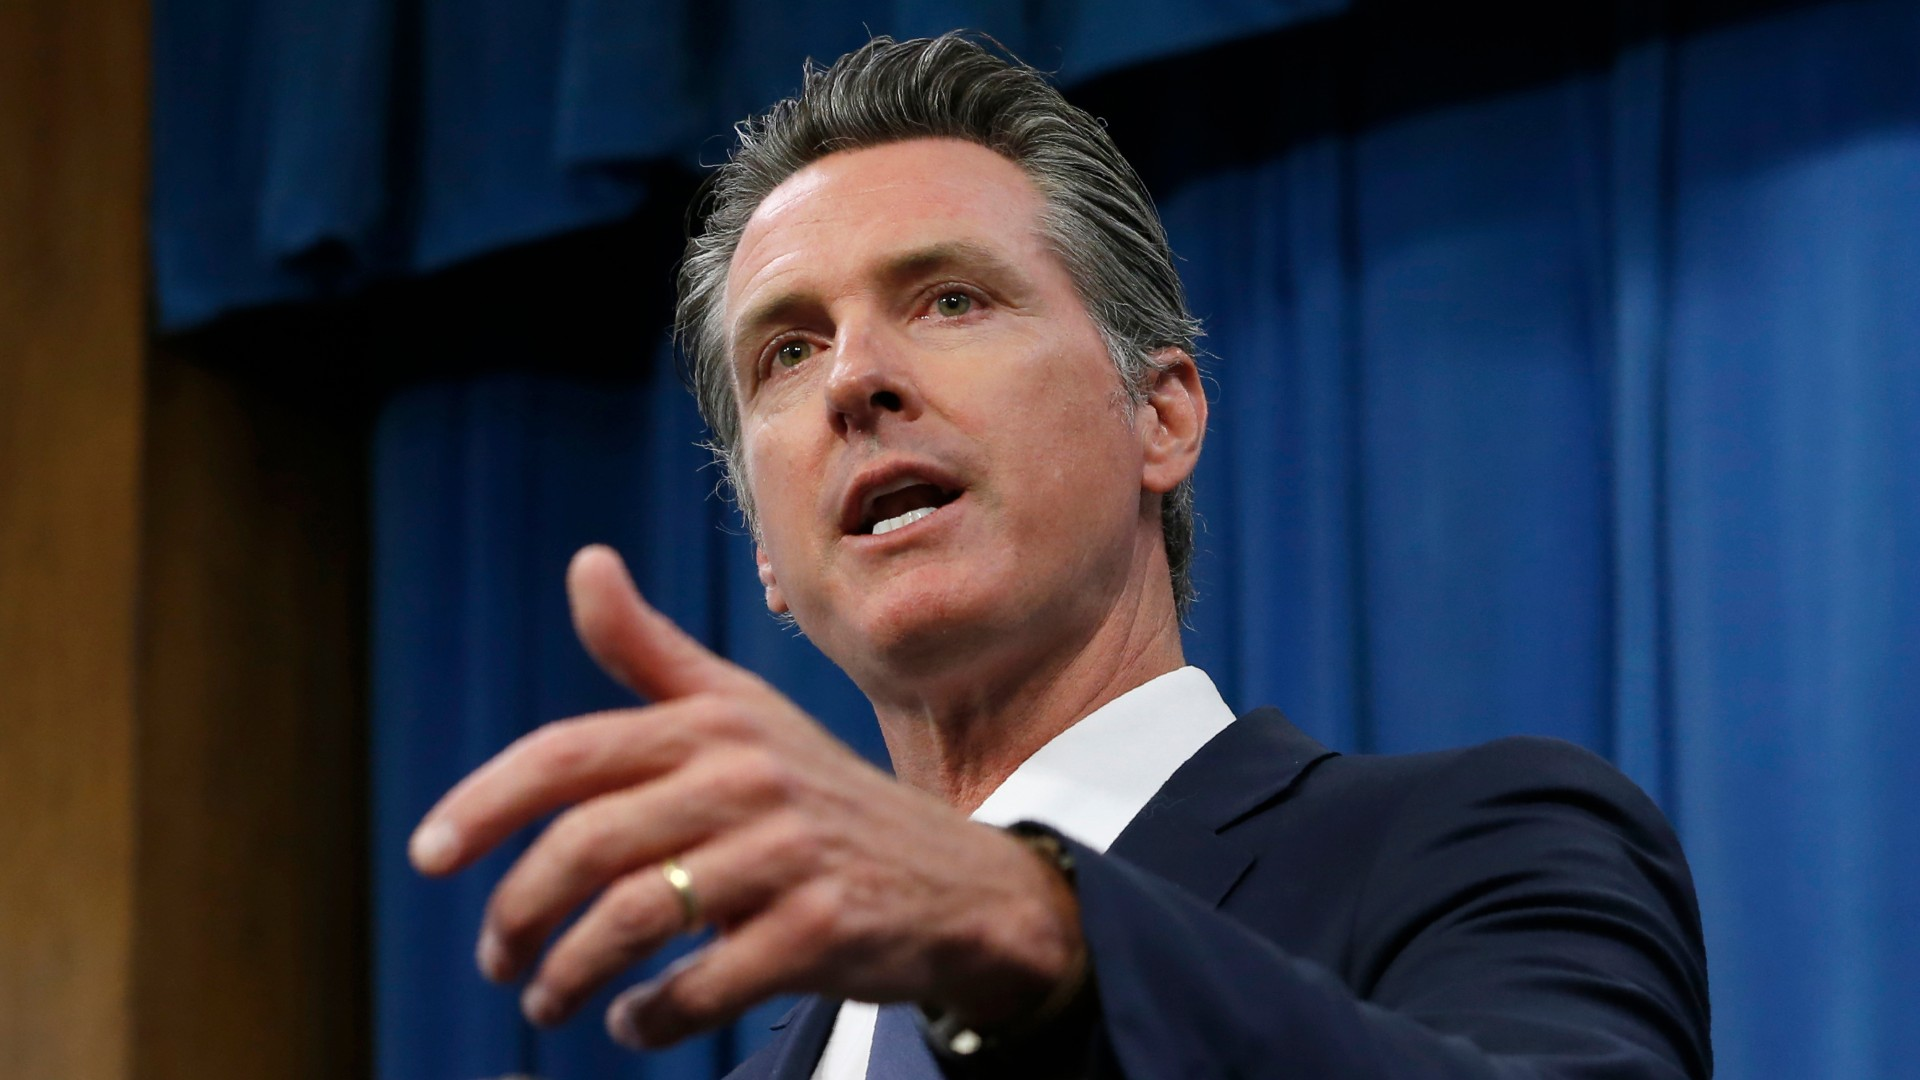 In this July 23, 2019, file photo, Gov. Gavin Newsom talks to reporters at his Capitol office in Sacramento.(Rich Pedroncelli / Associated Press)